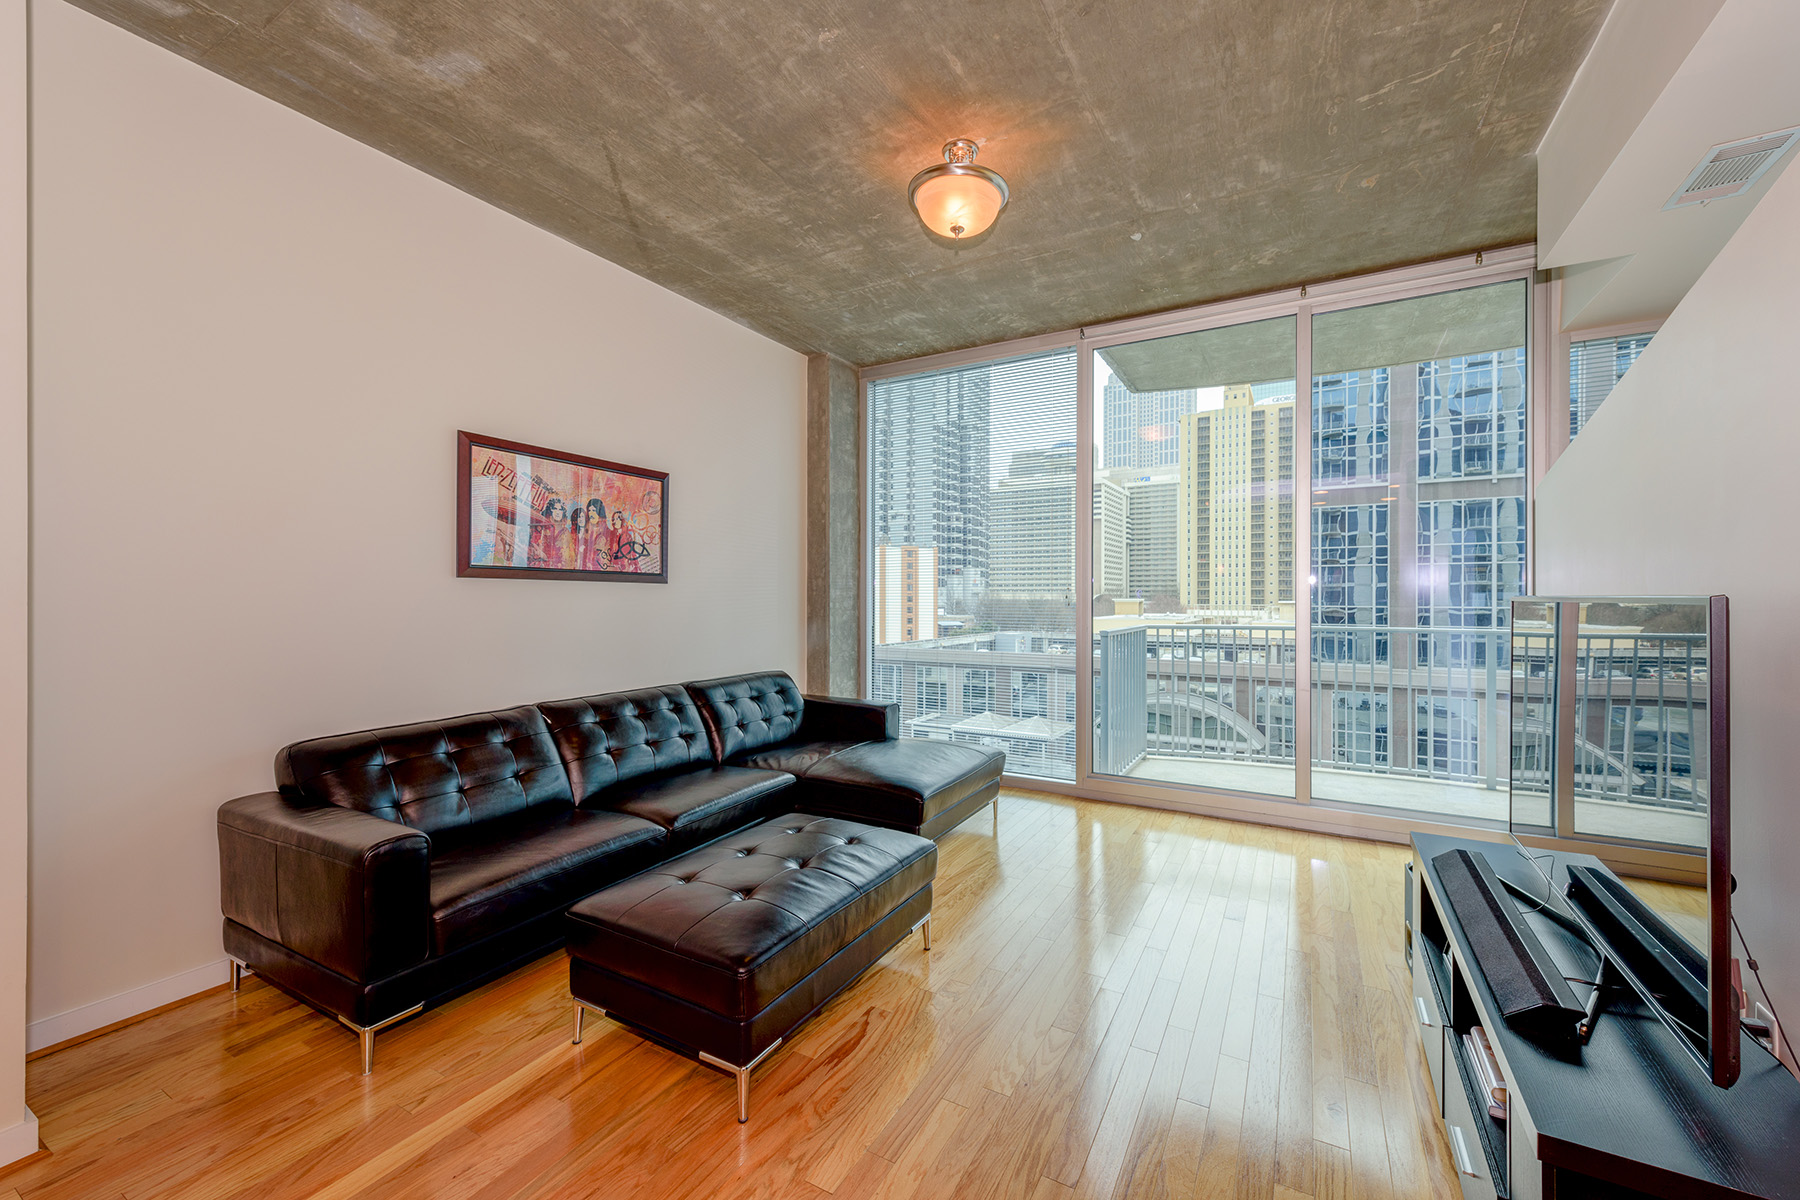 شقة بعمارة للـ Sale في Extraordinary City Living/Sought After Floor Plan 400 W Peachtree Street NW Unit 909, Atlanta, Georgia, 30308 United States